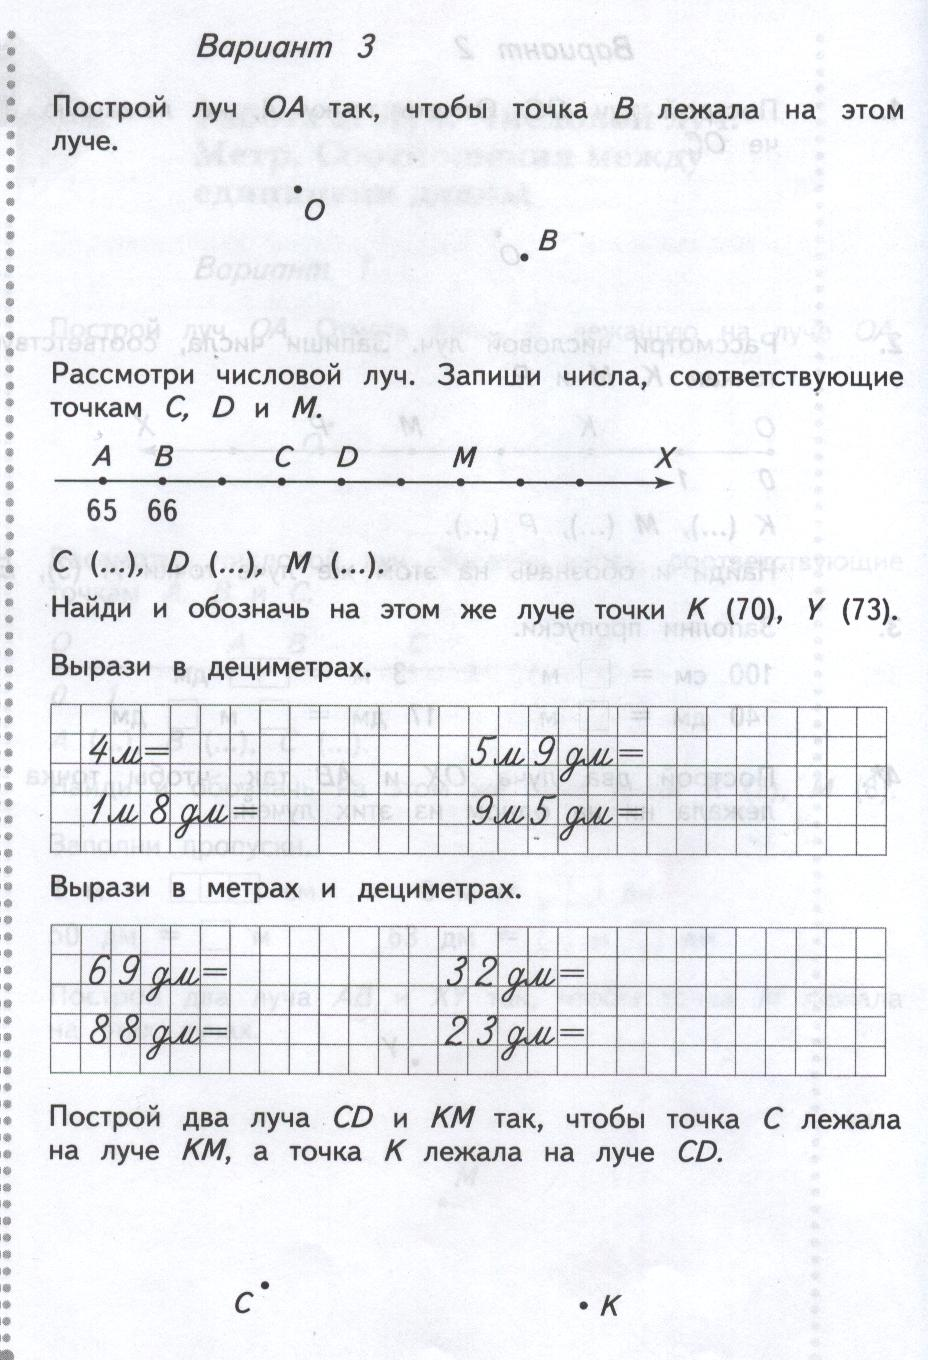 Описание: C:\Documents and Settings\Учитель\Рабочий стол\2 класс Лебедева\контрольная 26 042.jpg